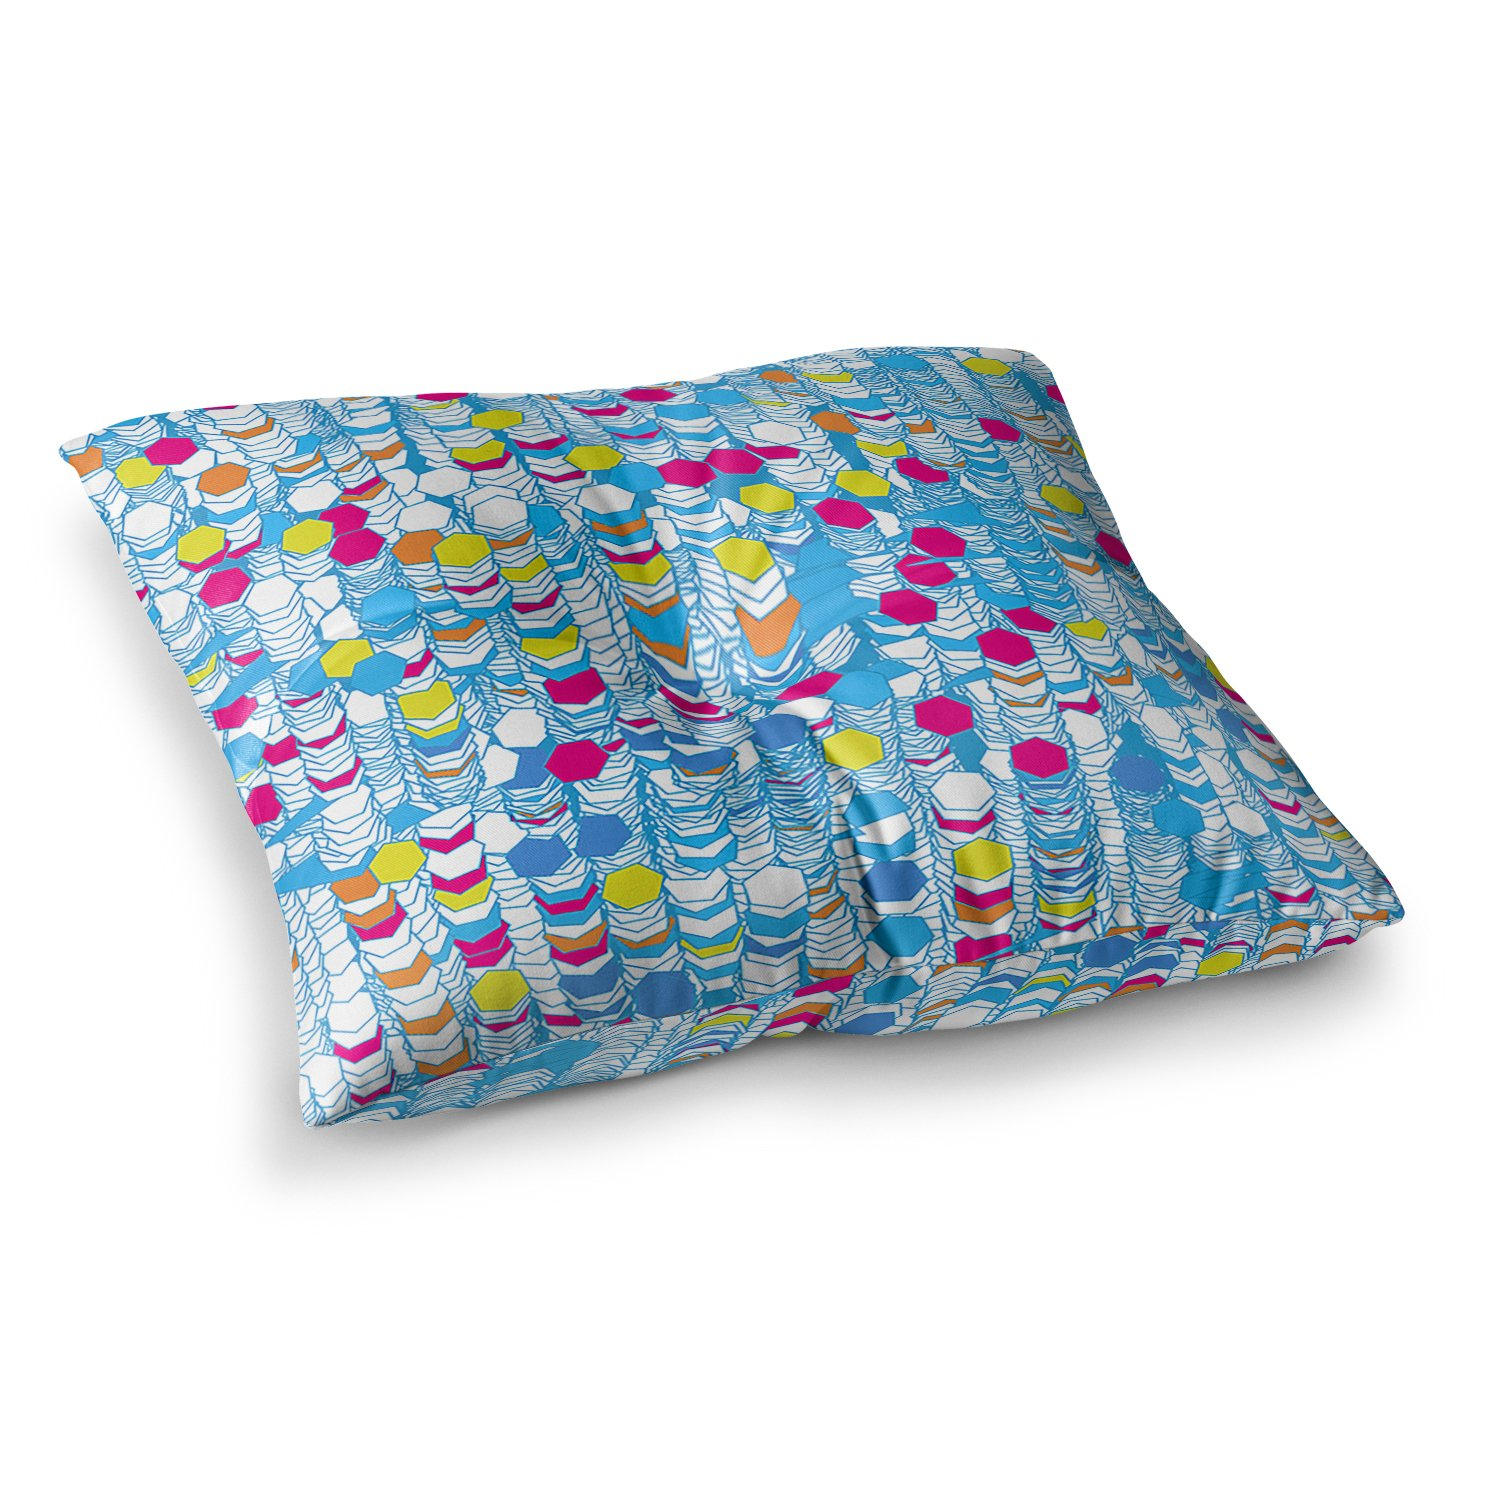 Kess InHouse Frederic Levy-Hadida Color Hiving Blue Abstract, 26' x 26' Square Floor Pillow